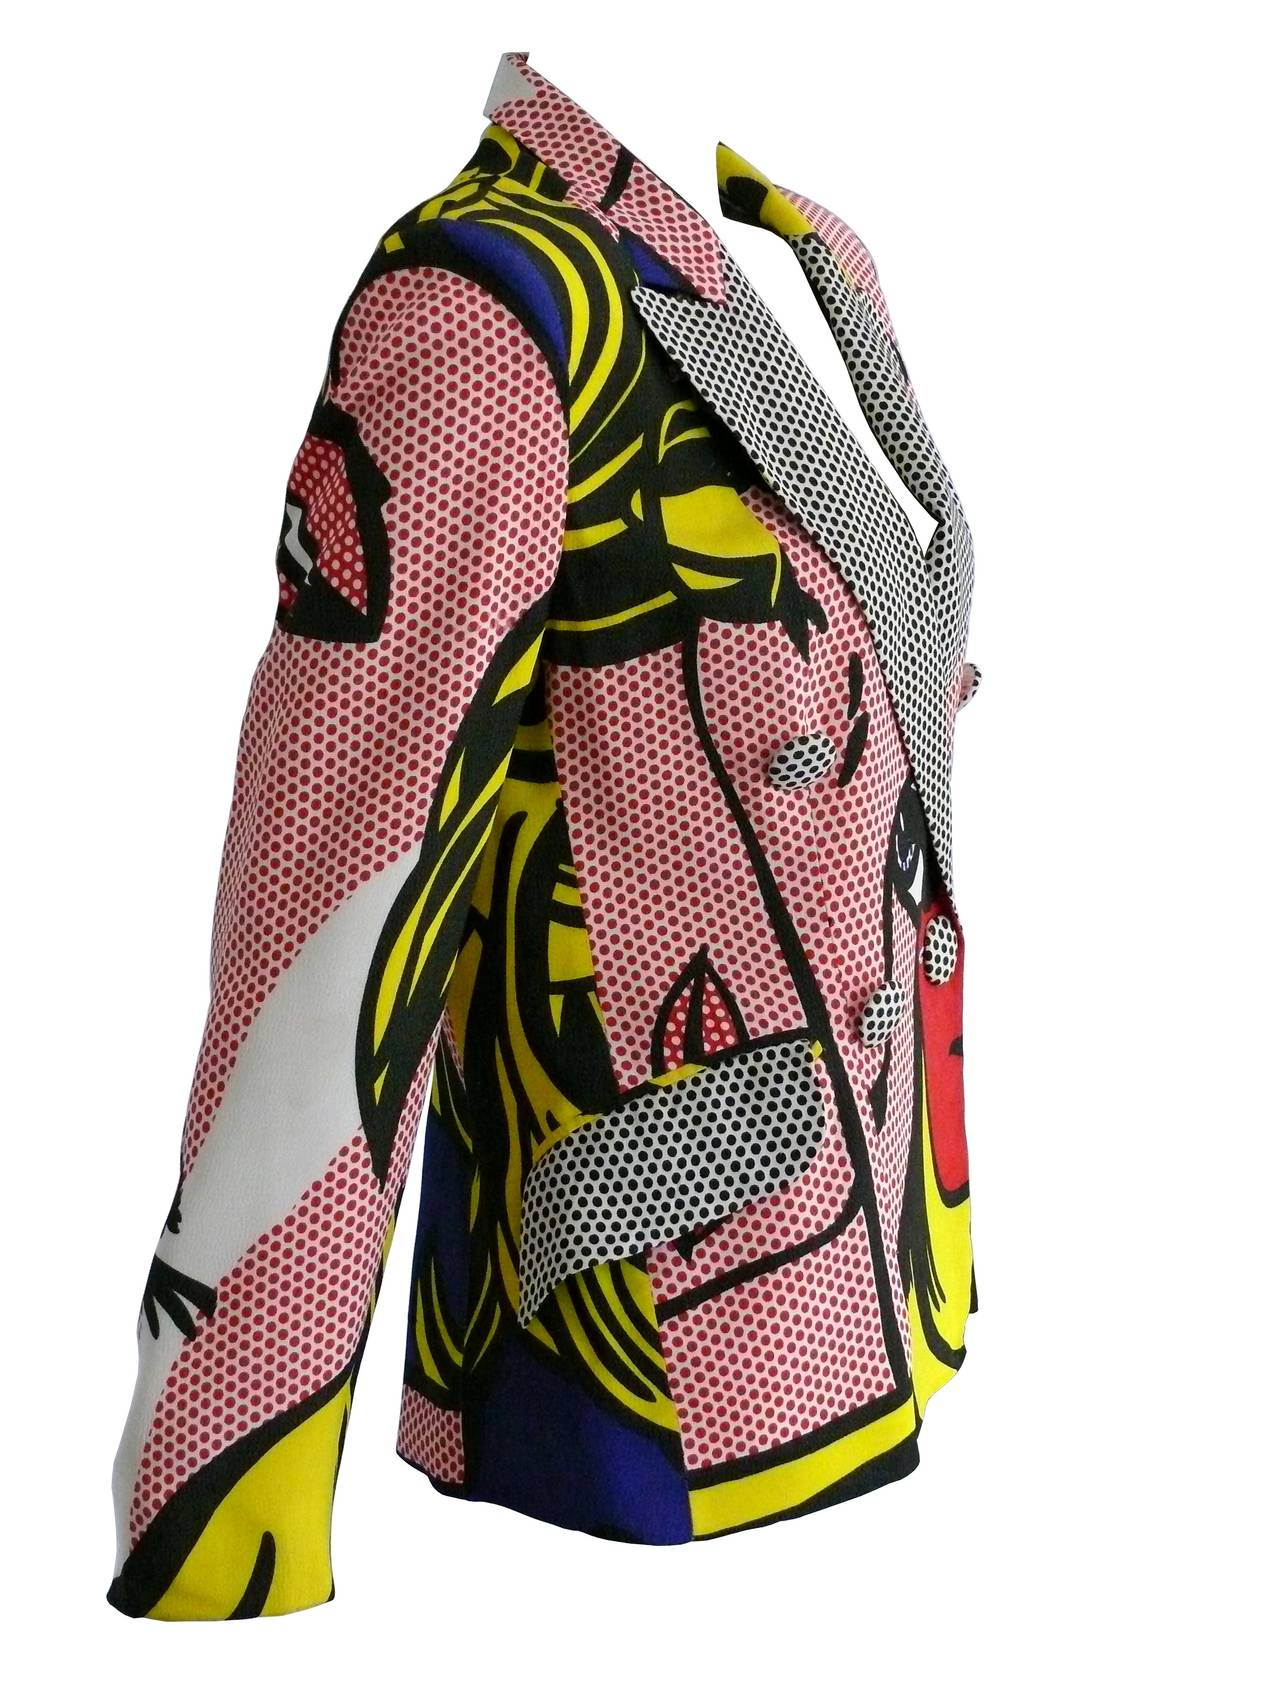 MOSCHINO rare pop-art blazer featuring an outsized newspaper-type print with vribrant colors. Tribute to the Amercian artist ROY LICHTENSTEIN.  MOSCHINO Spring Summer 1991 - Collection n°6.  This iconic piece features in the permanent